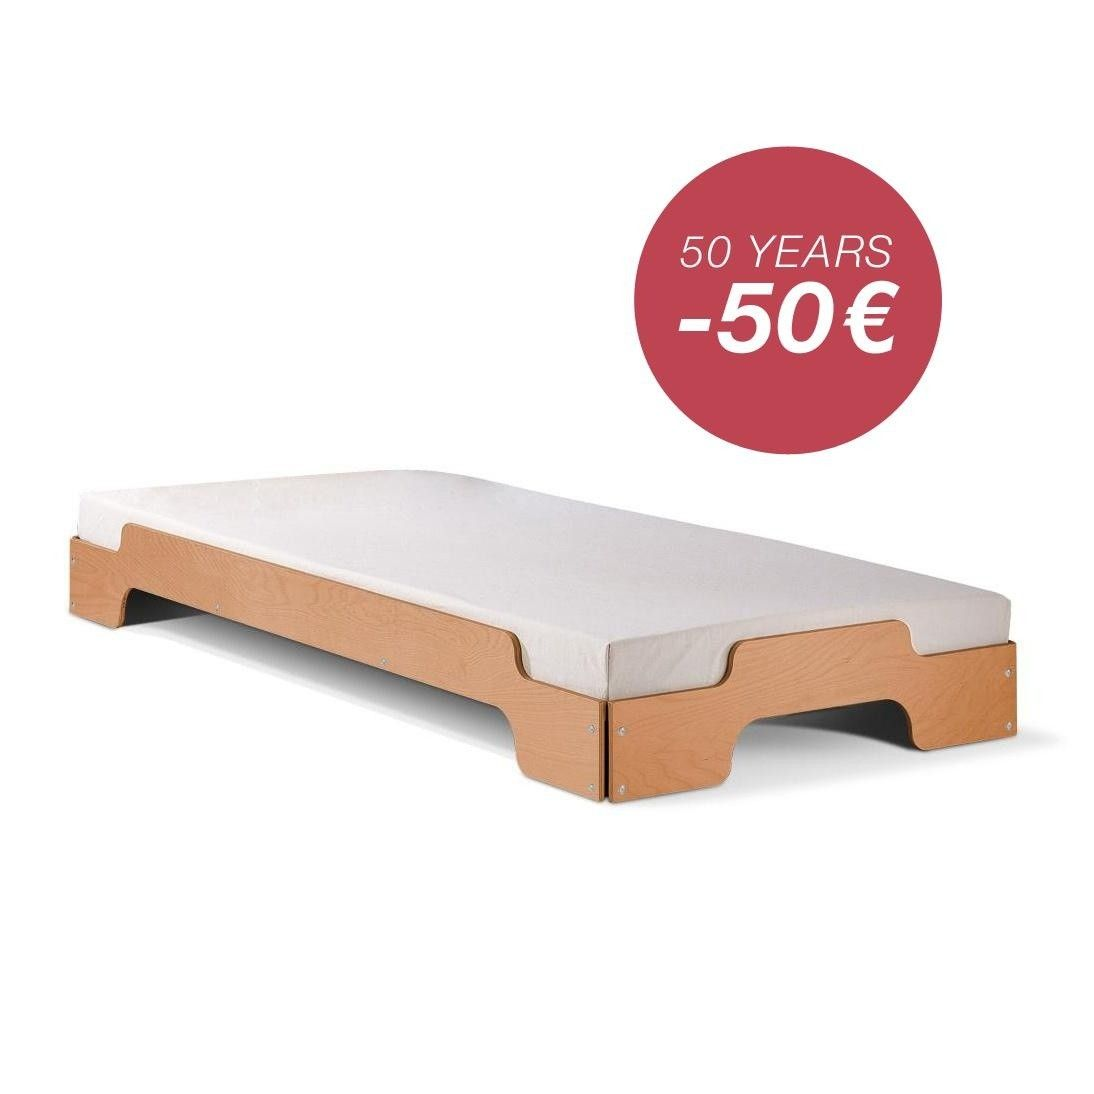 The Stapelliege Stackable Divan Bed Was Designed As Early As 1966 By Rolf  Heide For The German Manufacturer Müller Möbelwerkstätten And Has Since  Been The ...